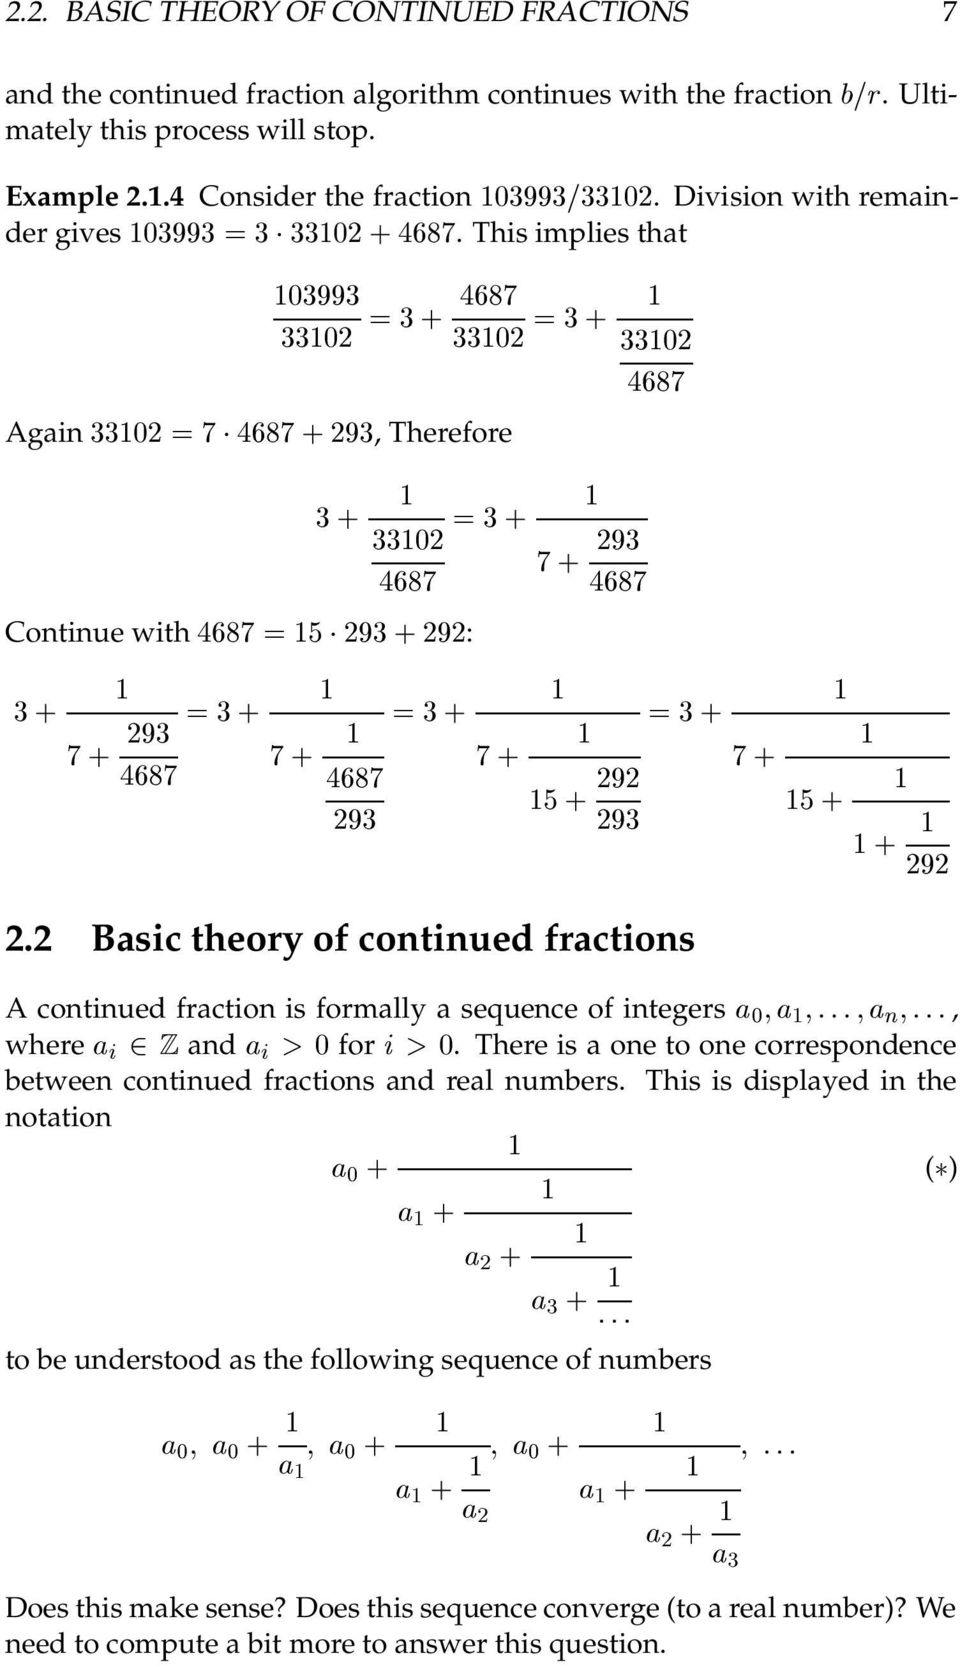 2 Basic theory of continued fractions ¾¾ A continued fraction is formally a sequence of integers ¼ Ò, where ¾ and ¼ for ¼.